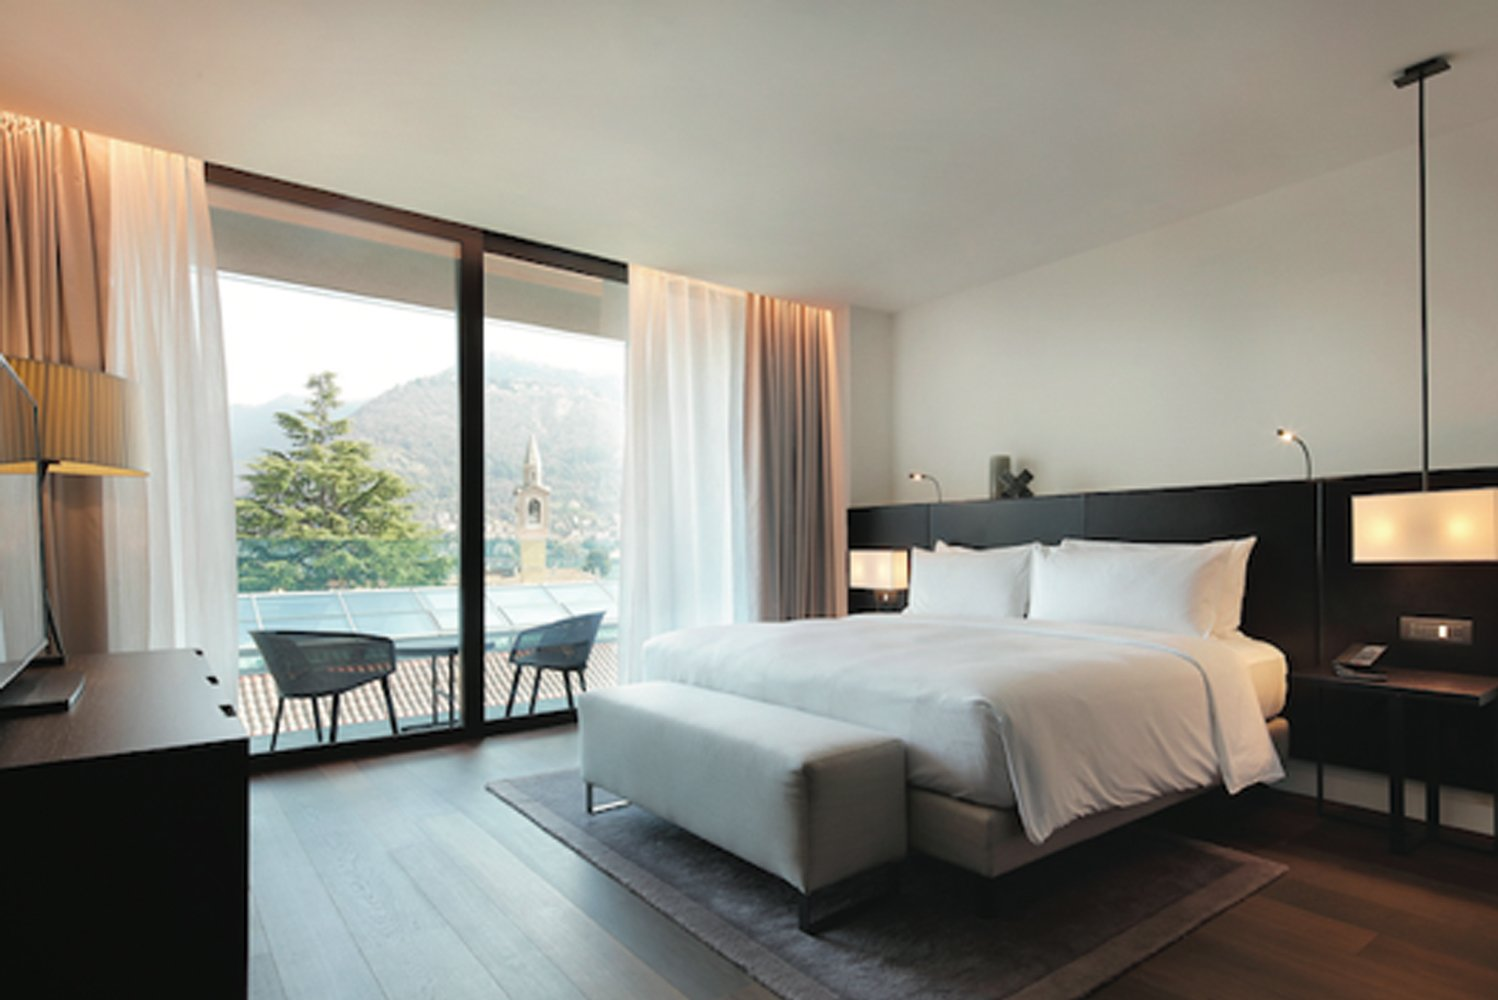 Located in Lake Como in Italy at the Swiss border, the 170-room hotel has amenities overlooking villas and gardens.